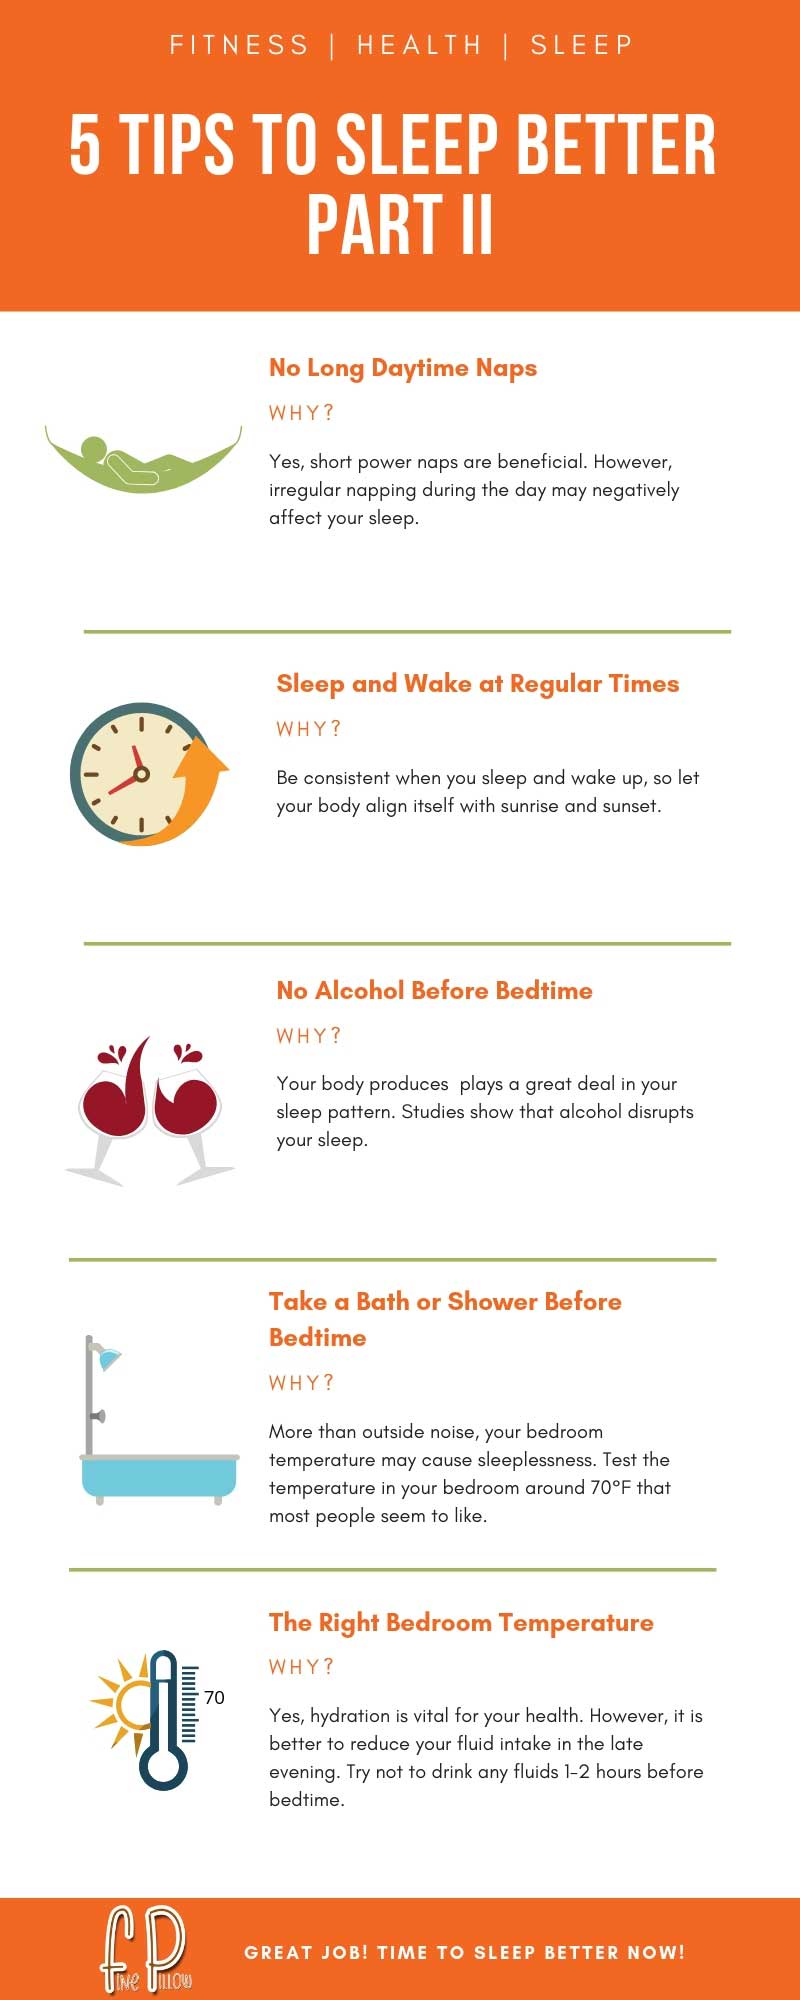 5 Tips to Sleep Better Part II